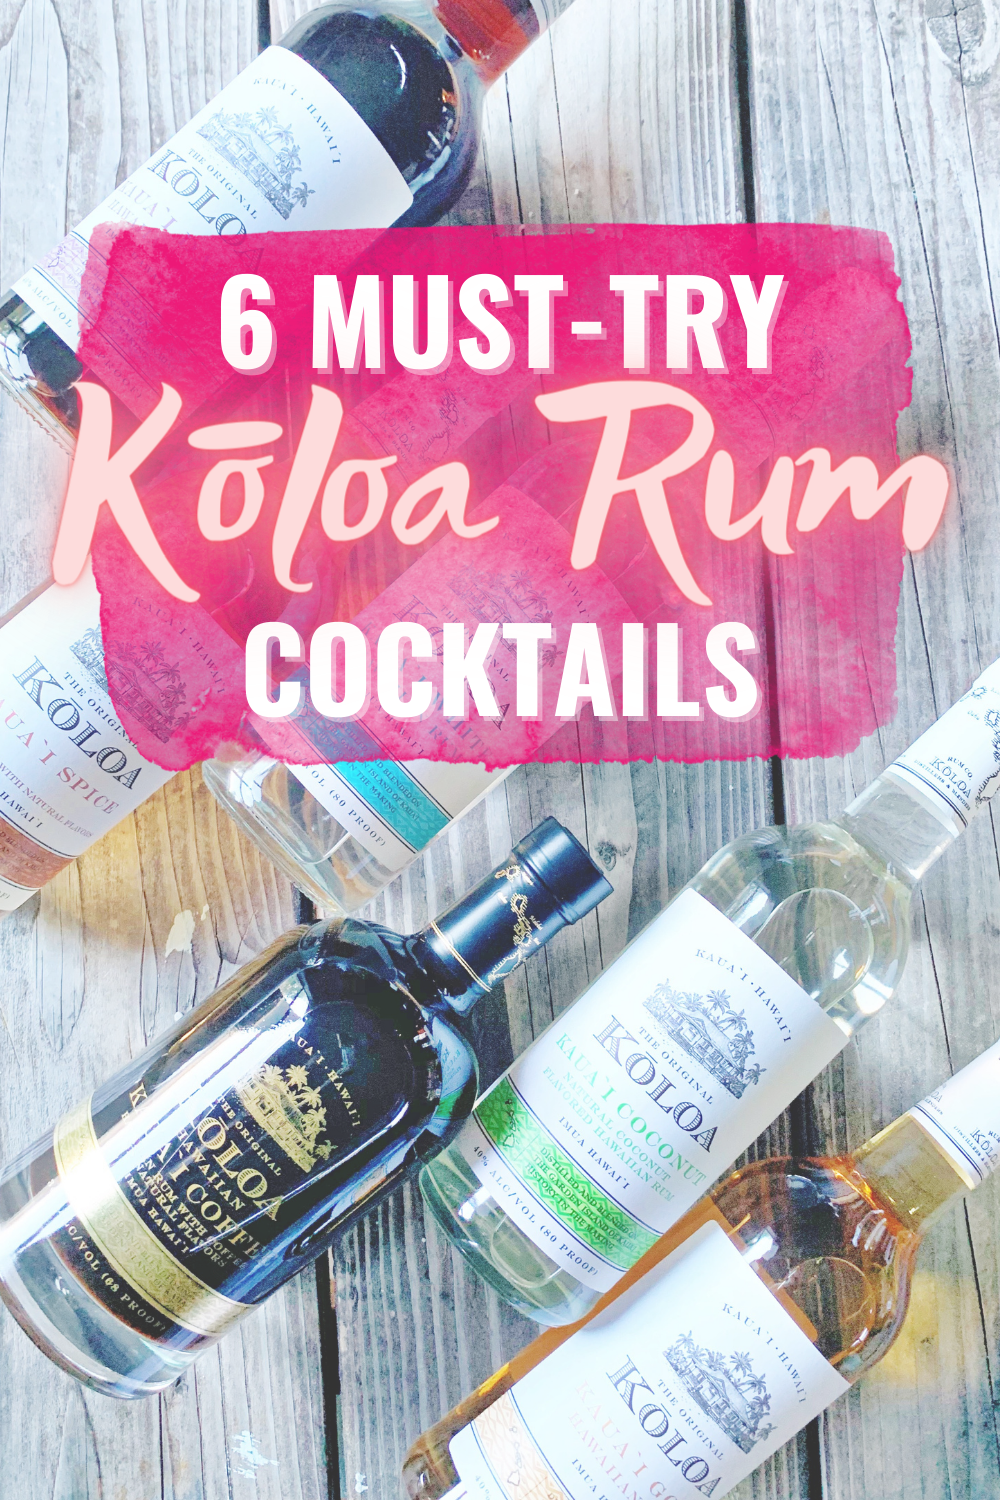 6 Delicious Kōloa Rum Cocktails To Make At Home - Looking for a taste of the islands? I'm sharing 6 delicious Kōloa Rum cocktails you can make at home! | Koloa Rum - Koloa Rum Punch - Kauai Rum